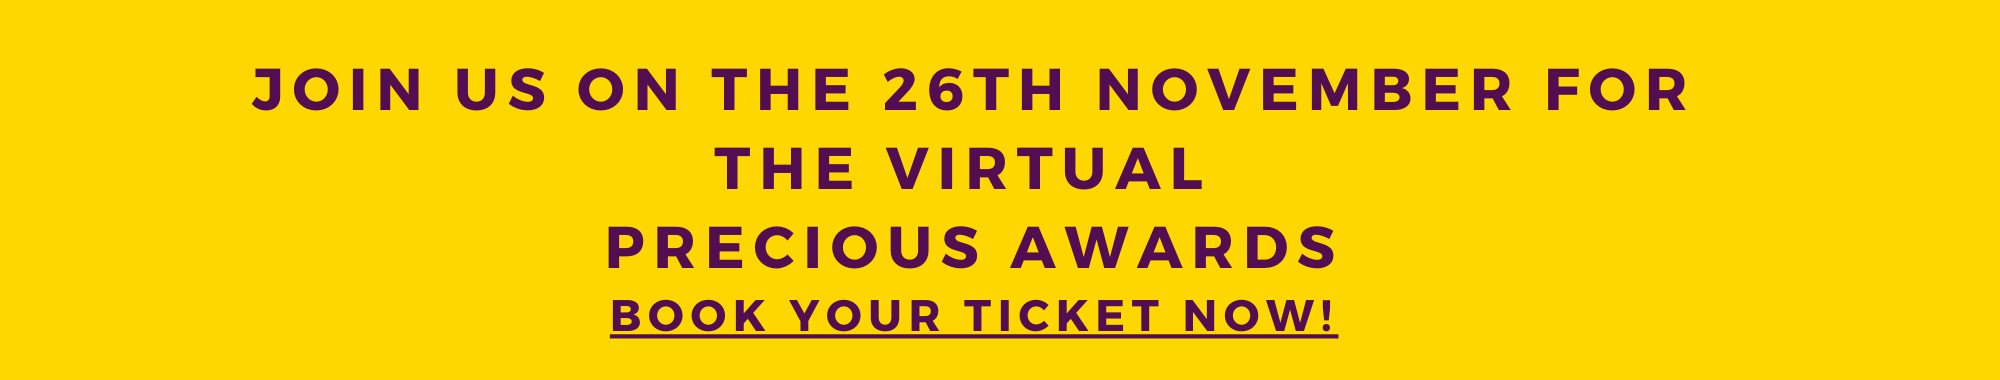 tickets are now on sale for the 14th Annual Precious Awards